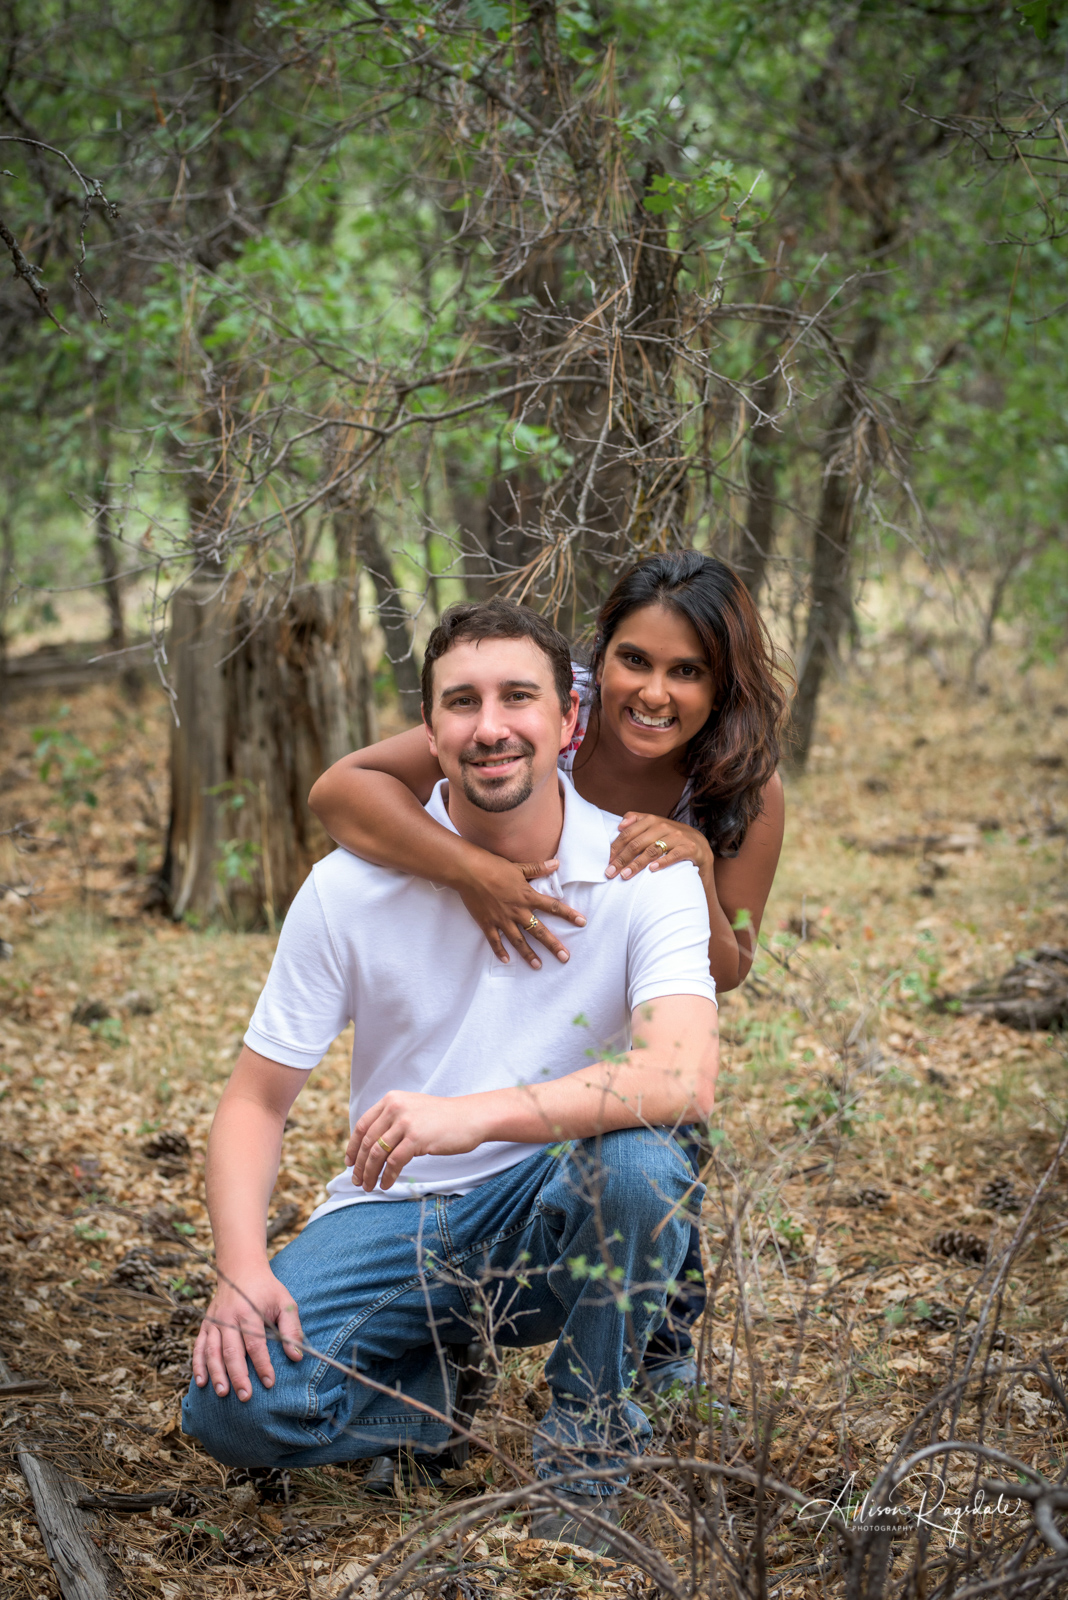 couples outdoor photography by Allison Ragsdale in durango Colorado